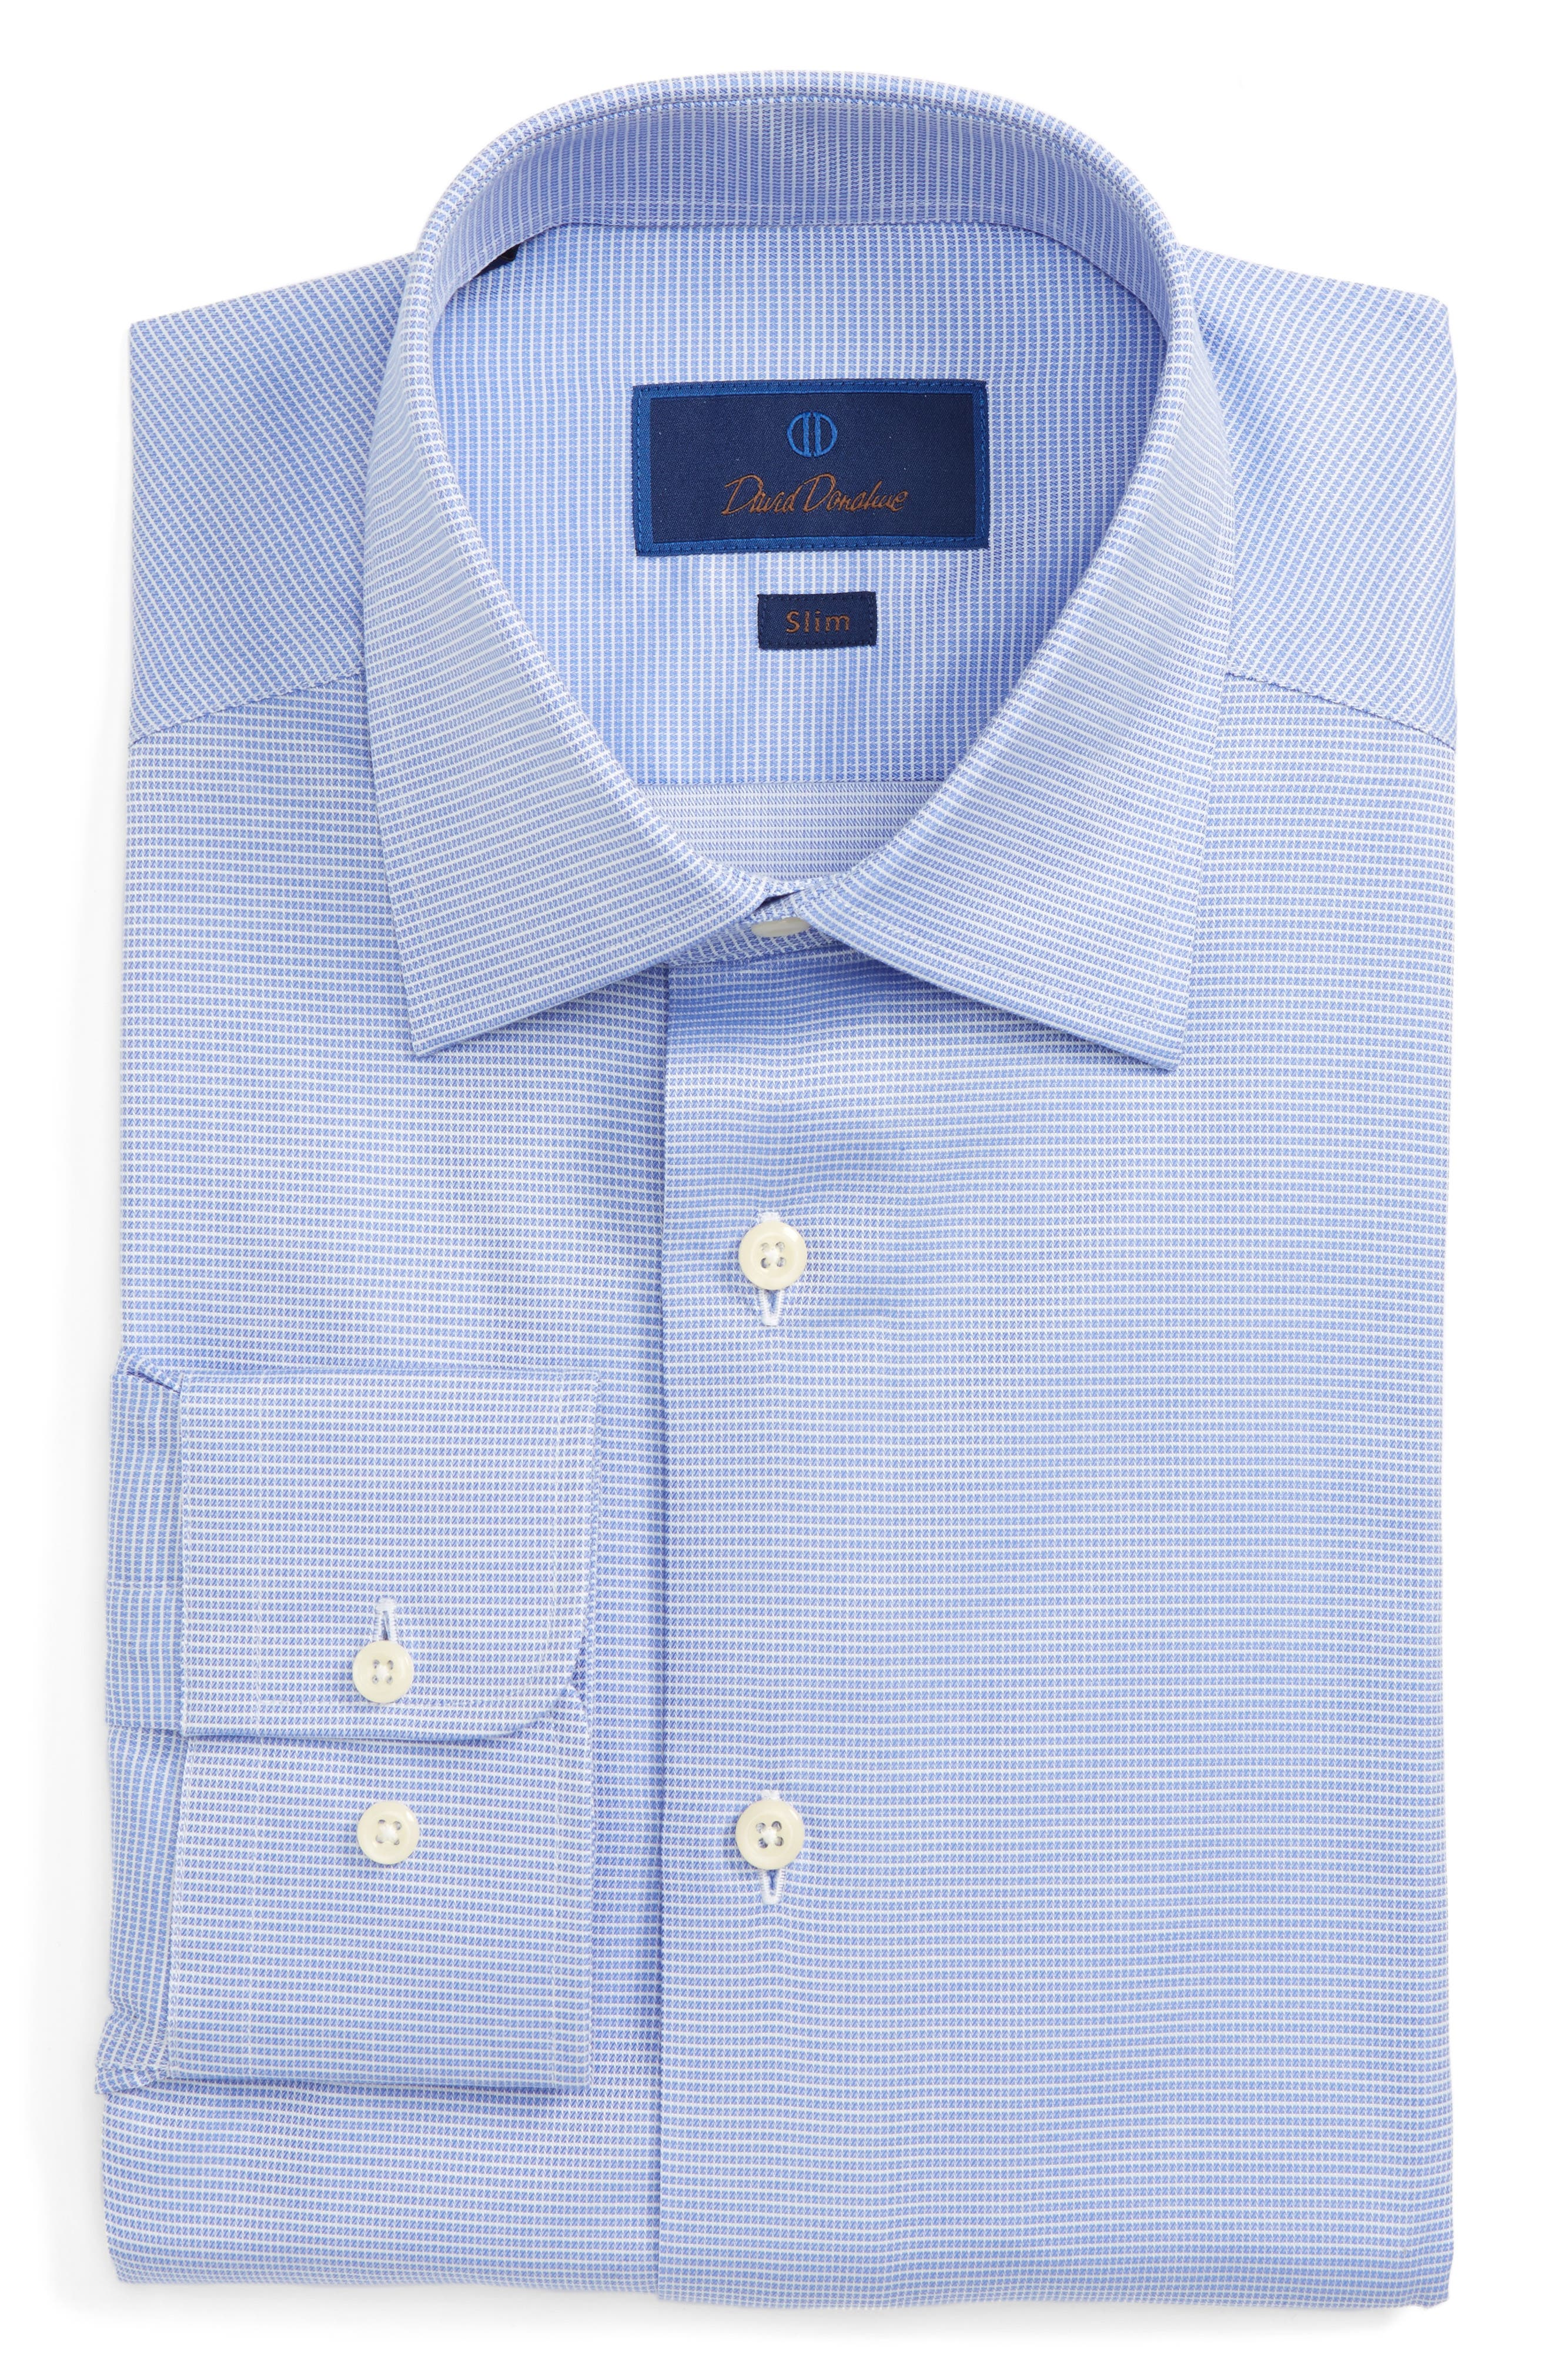 Slim Fit Check Dress Shirt,                             Main thumbnail 1, color,                             423